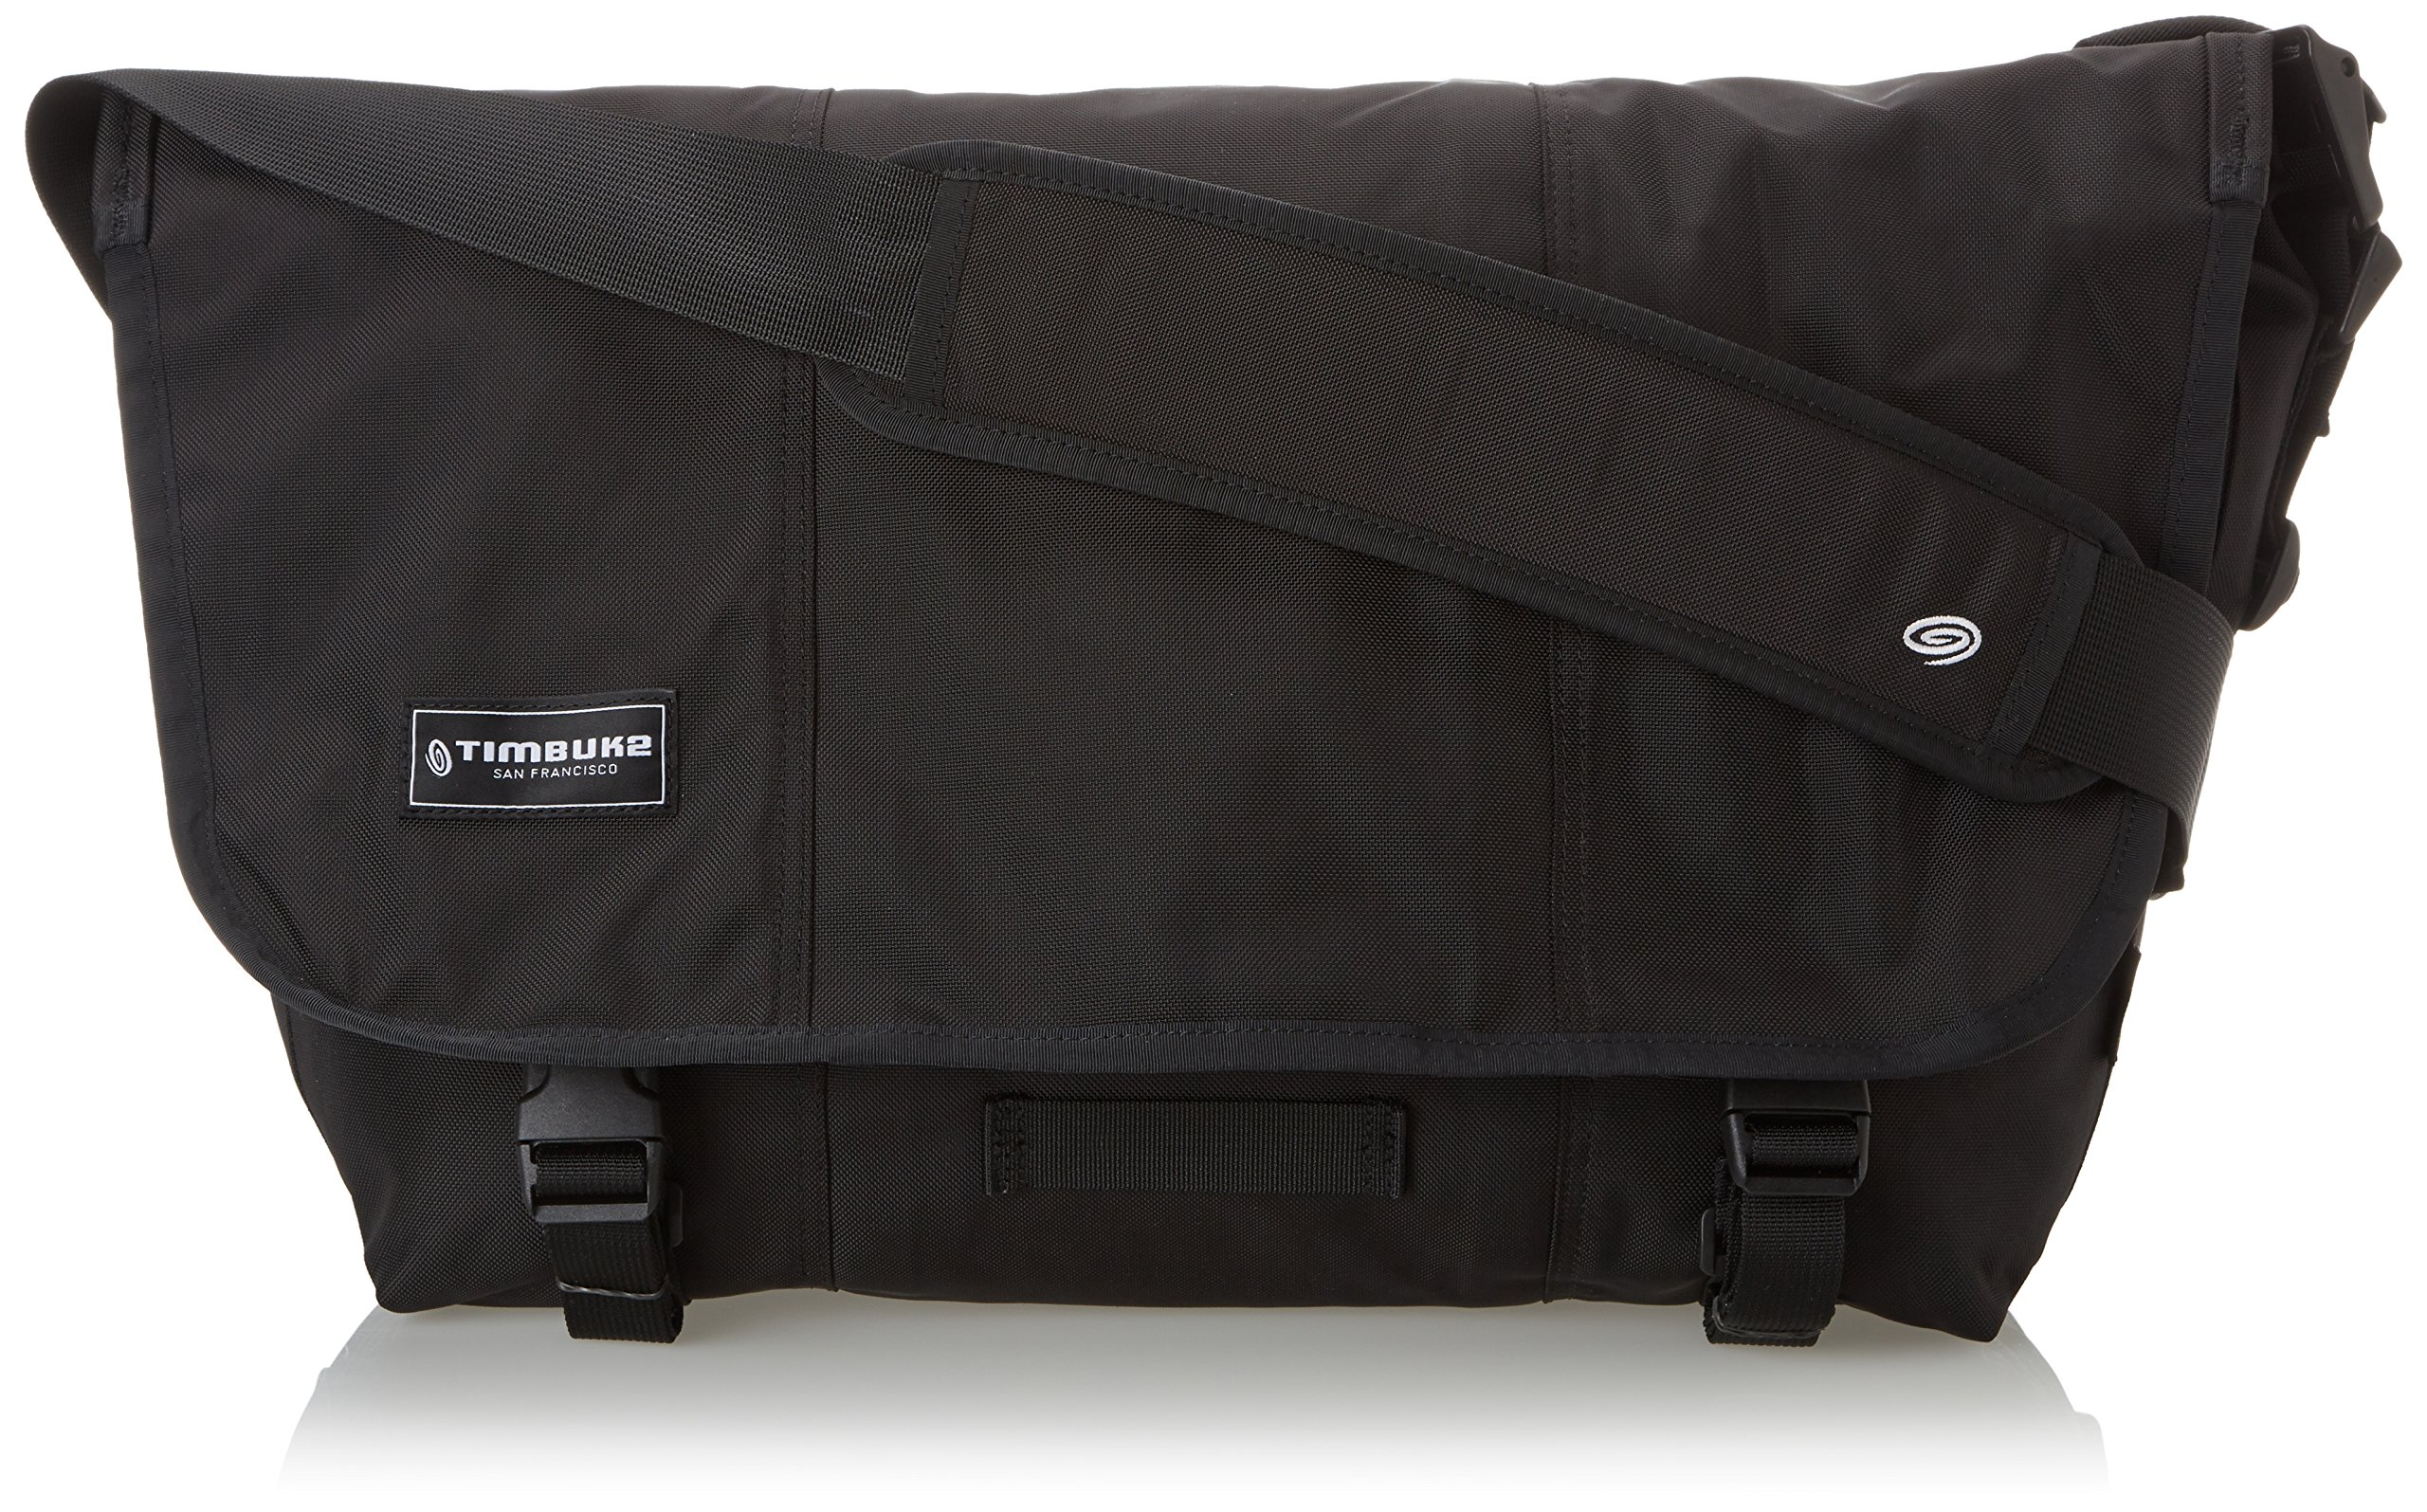 Timbuk2 Classic Messenger Bag, Black, Small